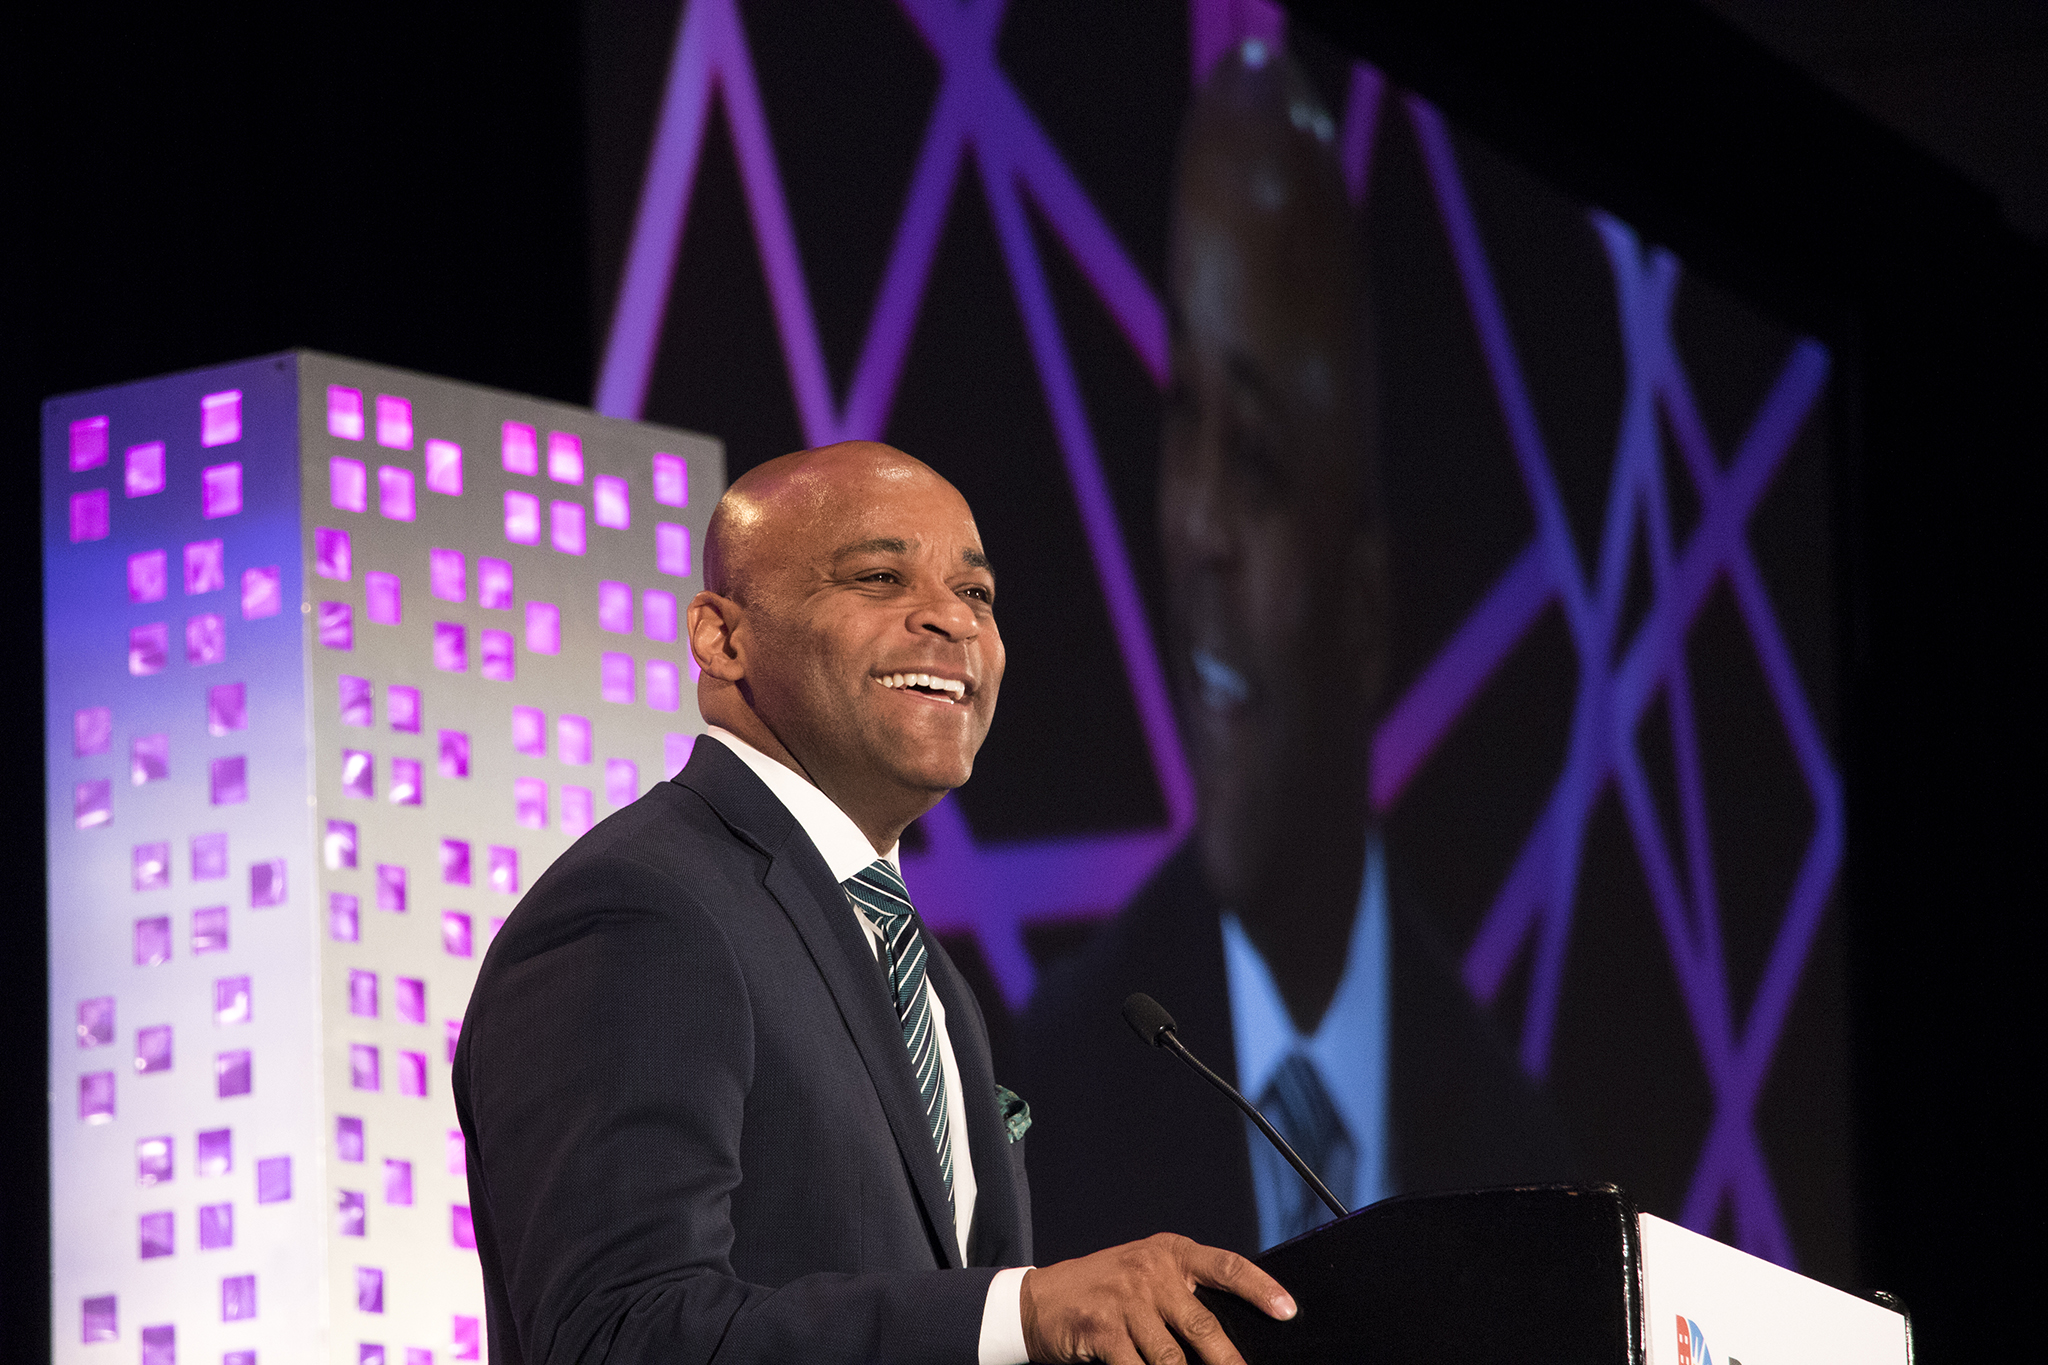 <p>Mayor Michael Hancock speaks during the 2018 Sustainable Denver Summit at the Colorado Convention Center, Nov. 29, 2018.</p>